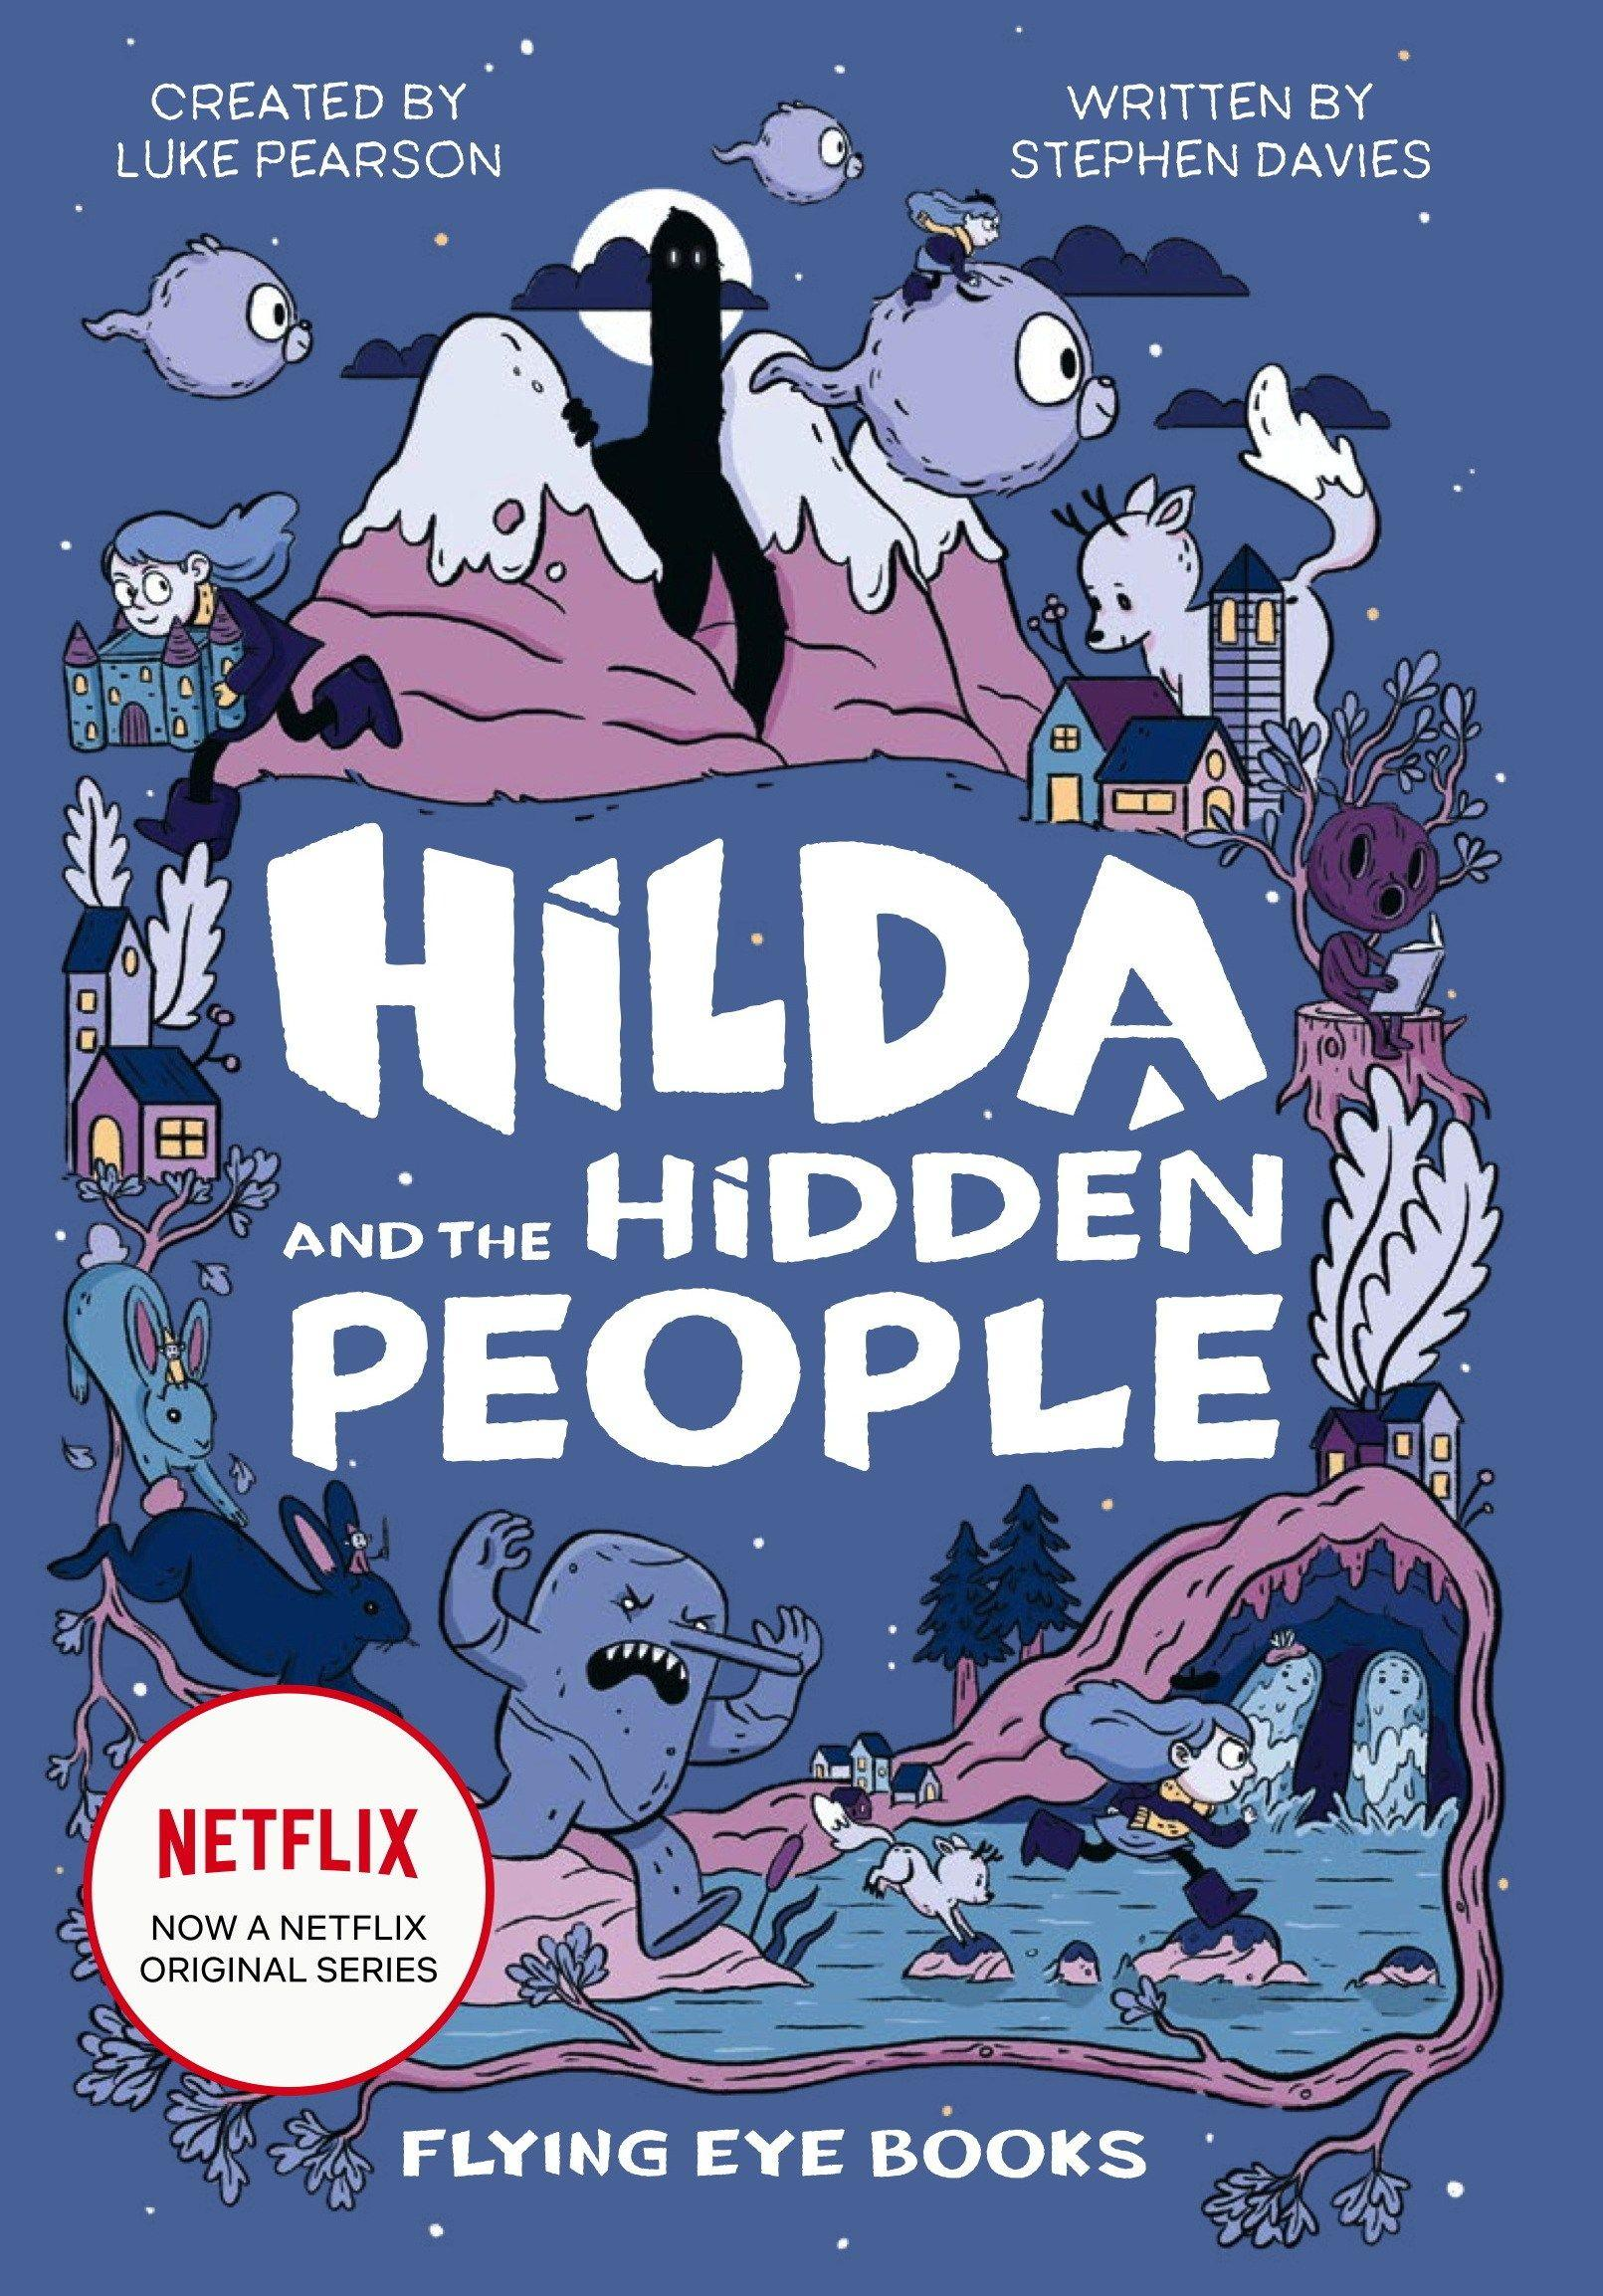 EXCLUSIVE: Hilda is coming to Netflix and we've got the first cover ...